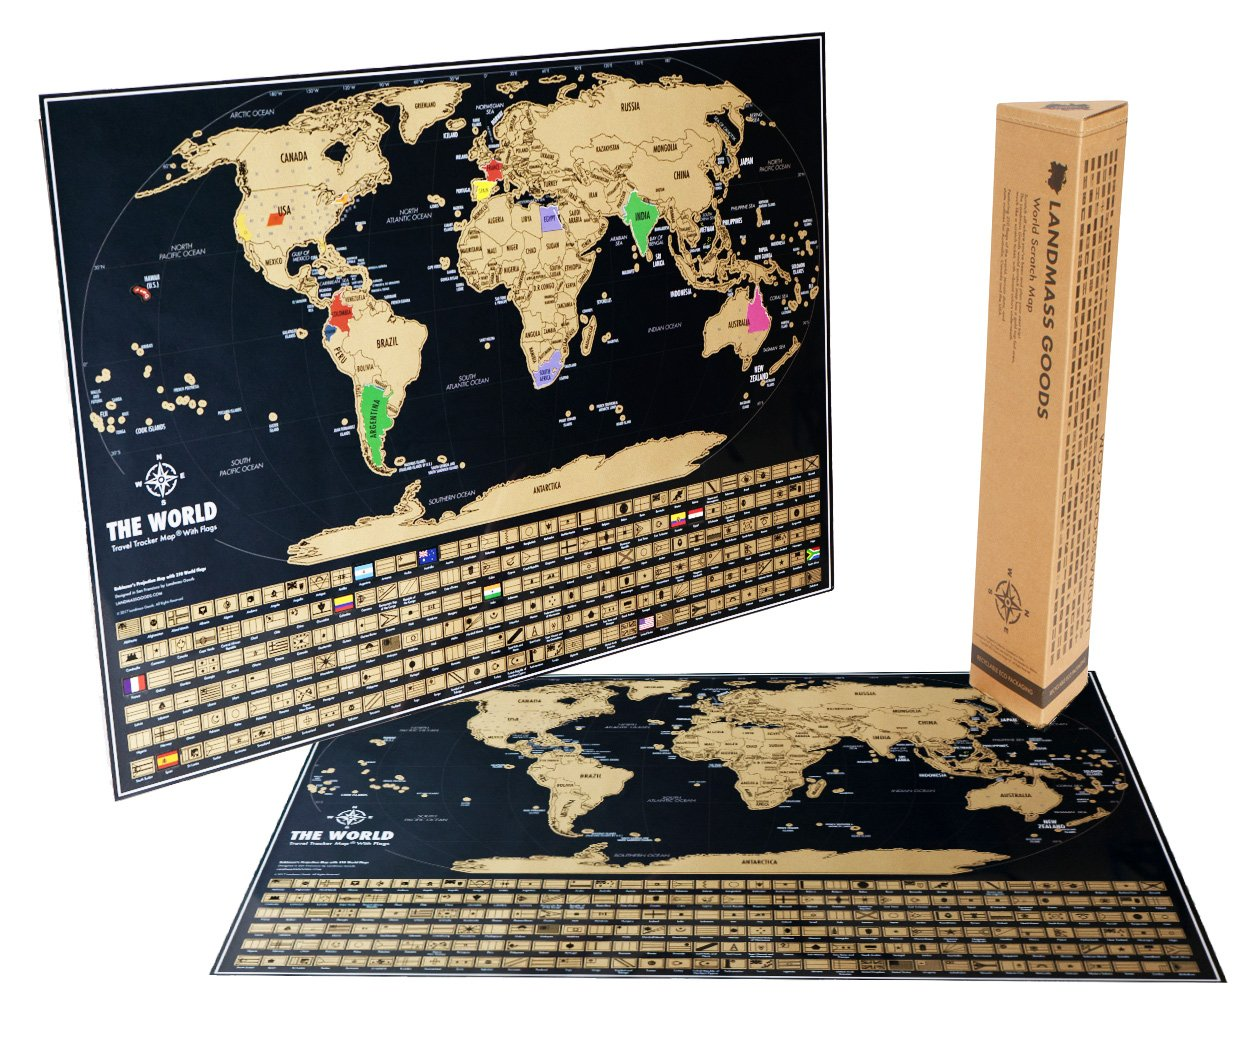 Vintage scratch off world map black and gold world travel tracker colorblack and gold landmasss world travel tracker map gumiabroncs Images